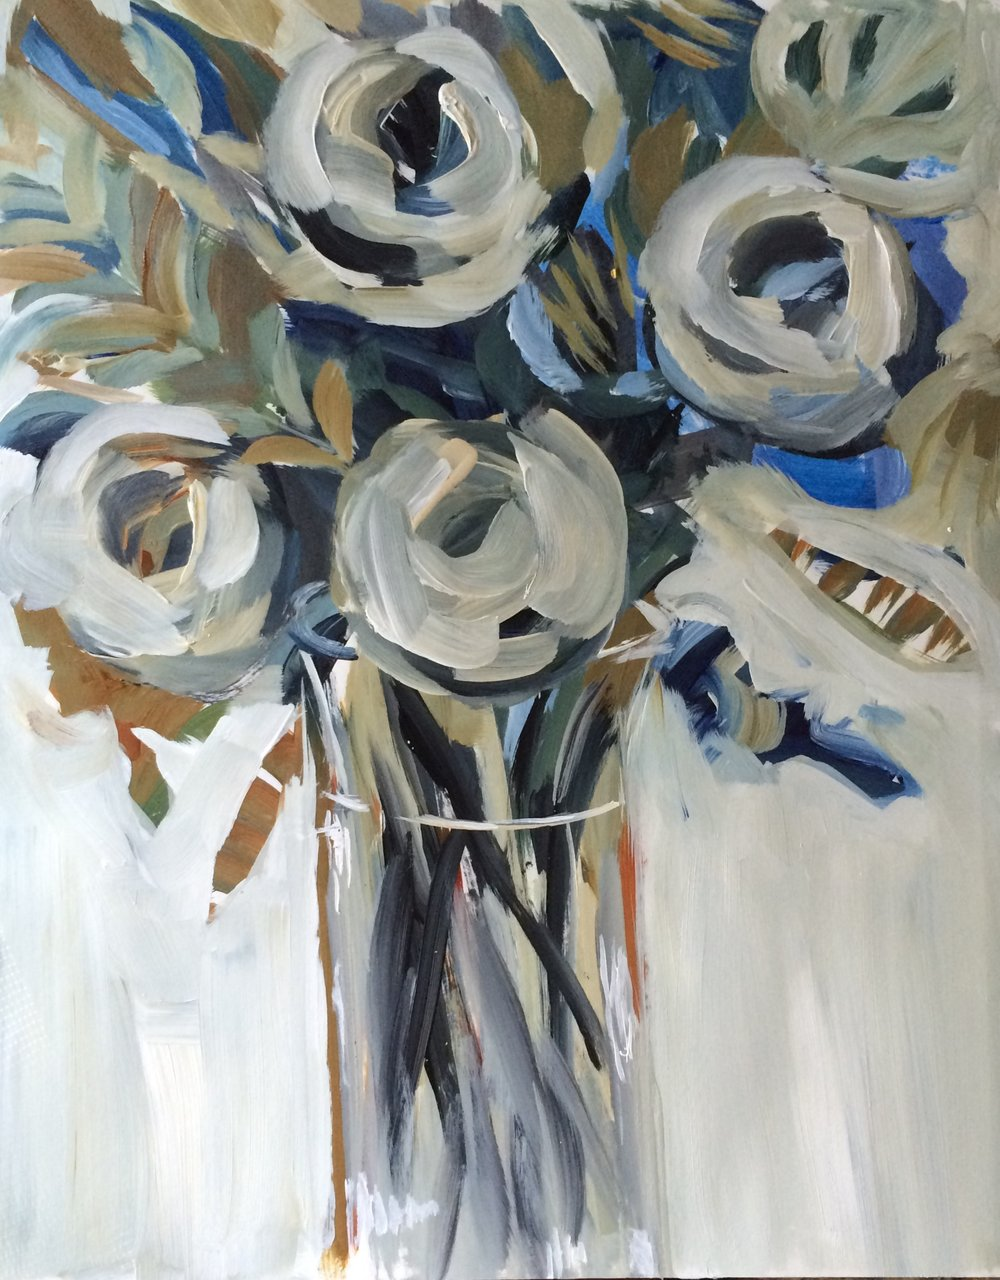 134 Stand Tall - Expressive Acrylic Painting - 11%22x14%22 - Lisa Cohen.jpg